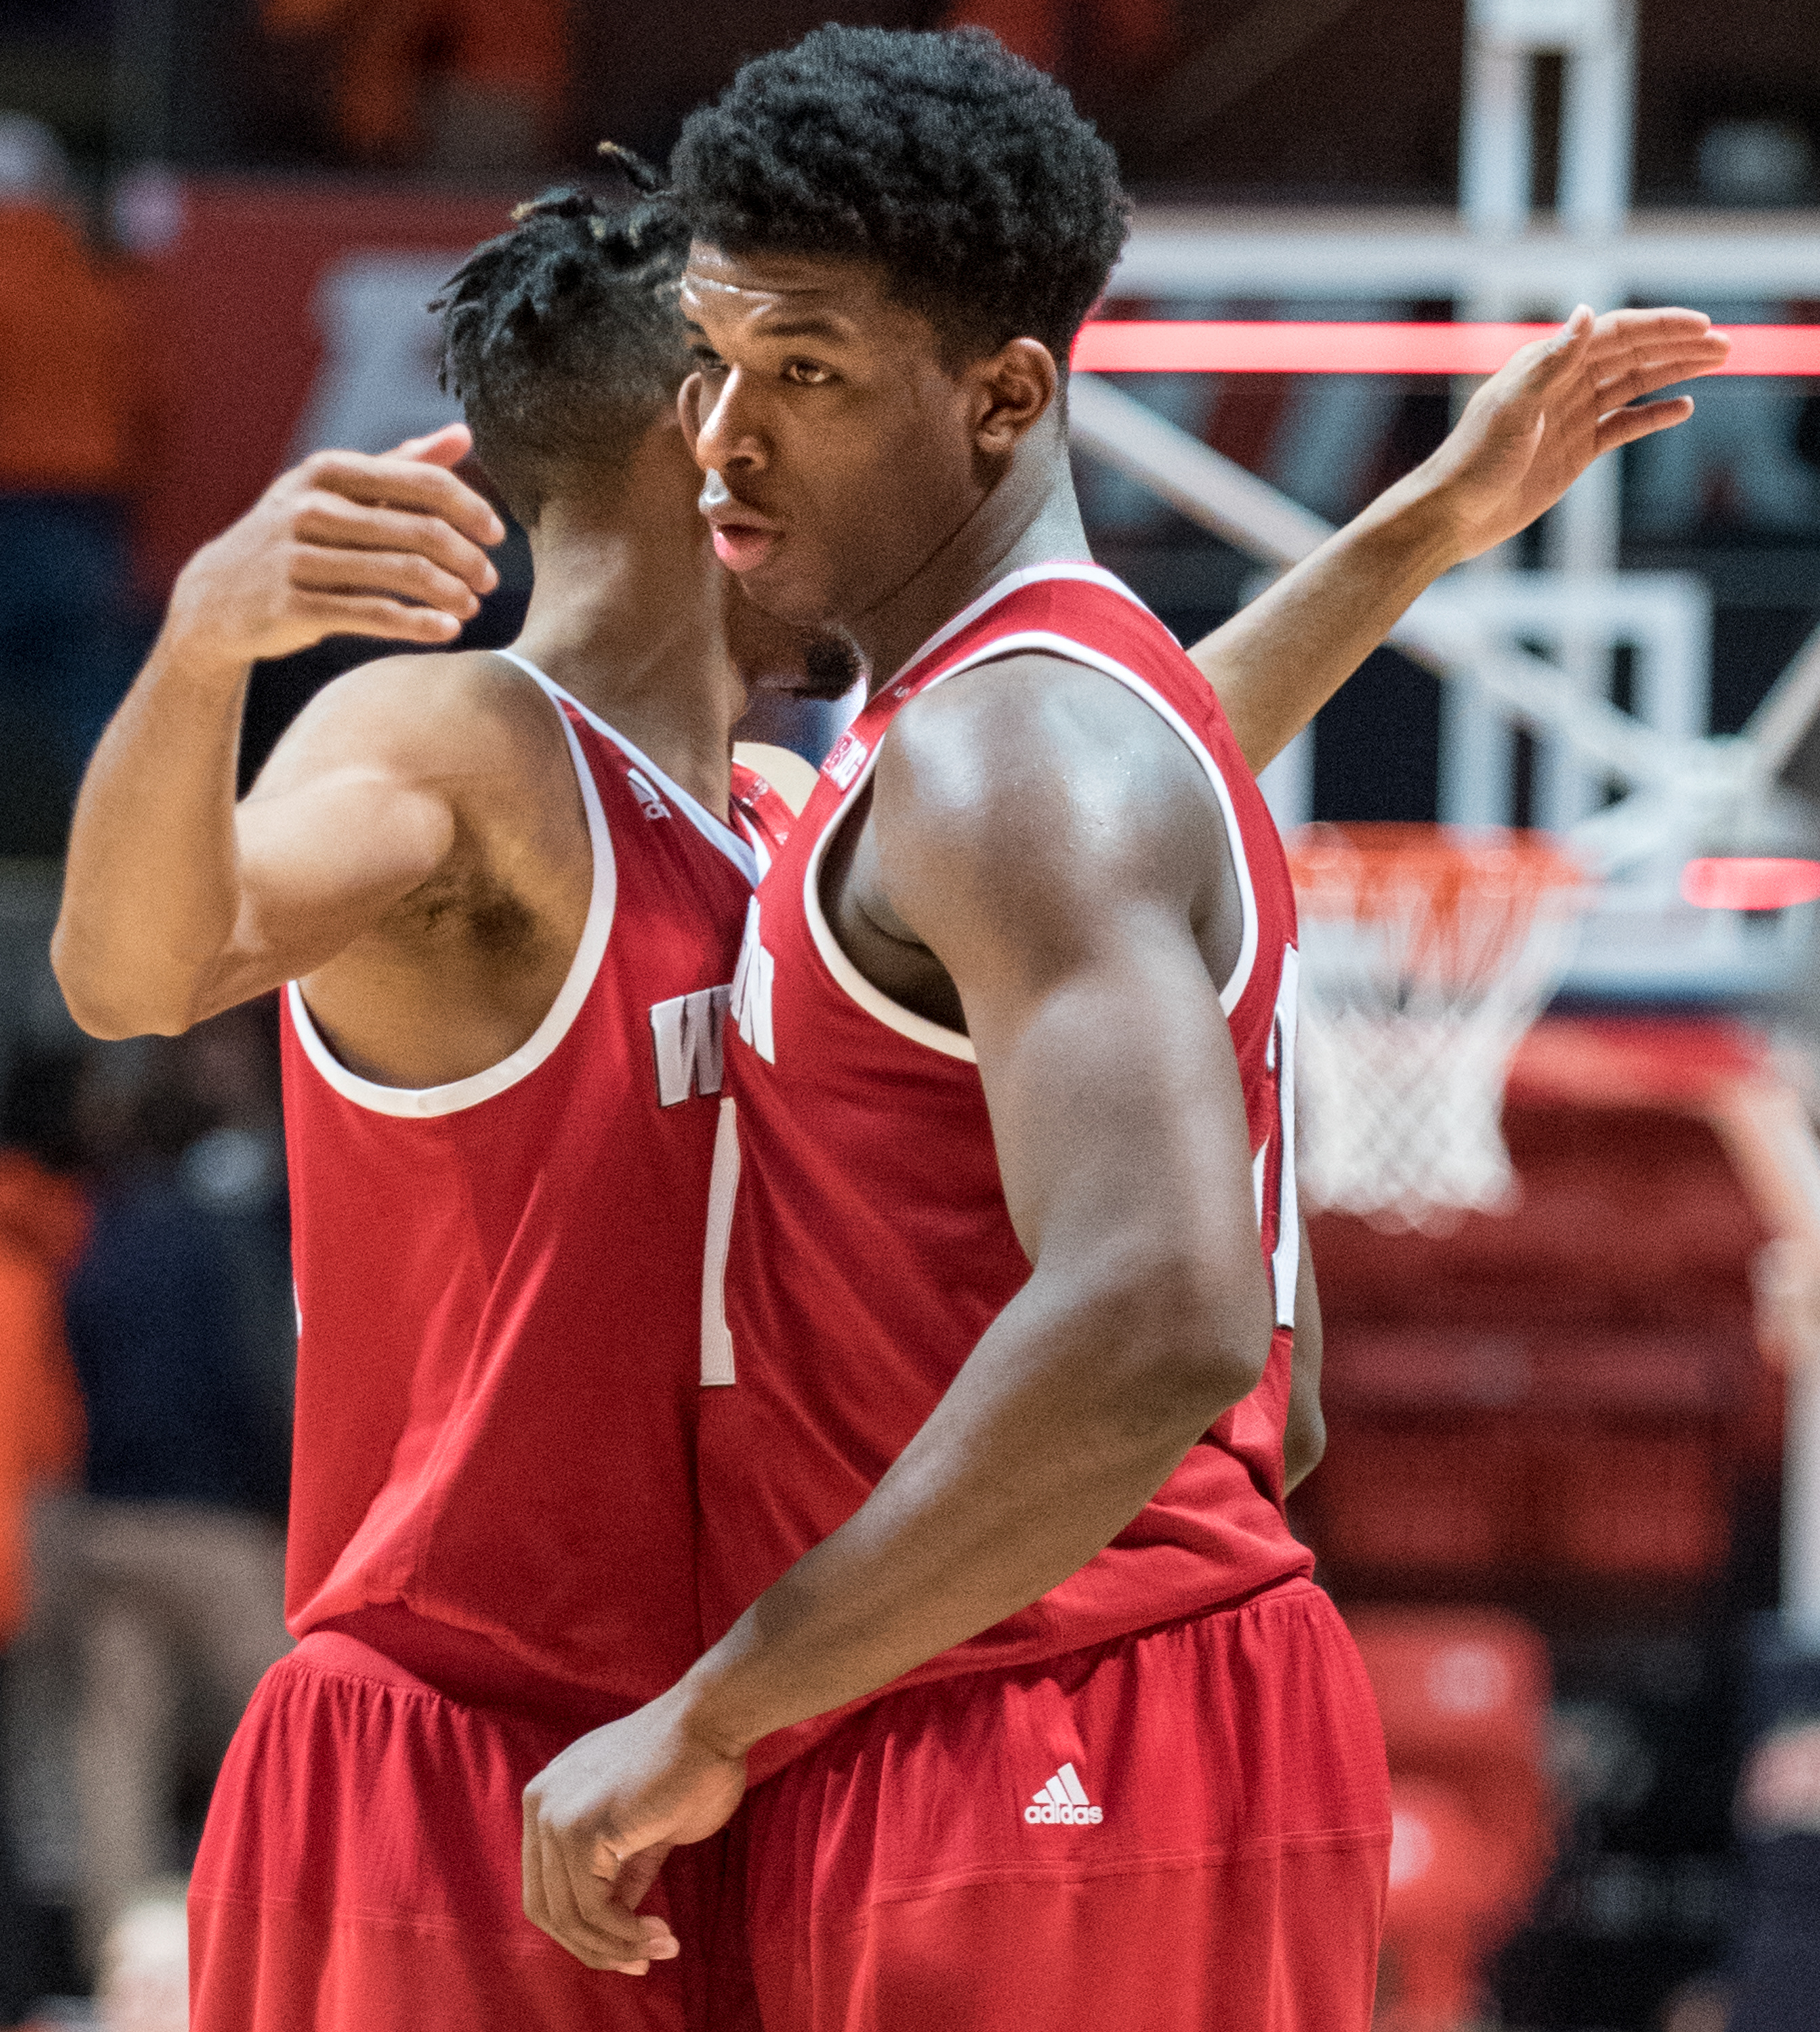 Wisconsin's forward Khalil Iverson (21) is chest bumped by teammate Wisconsin's guard Jordan Hill (11) following an NCAA college basketball game in Champaign, Ill., Sunday, Jan. 31, 2016. Wisconsin won 63-55. (AP Photo/Robin Scholz)